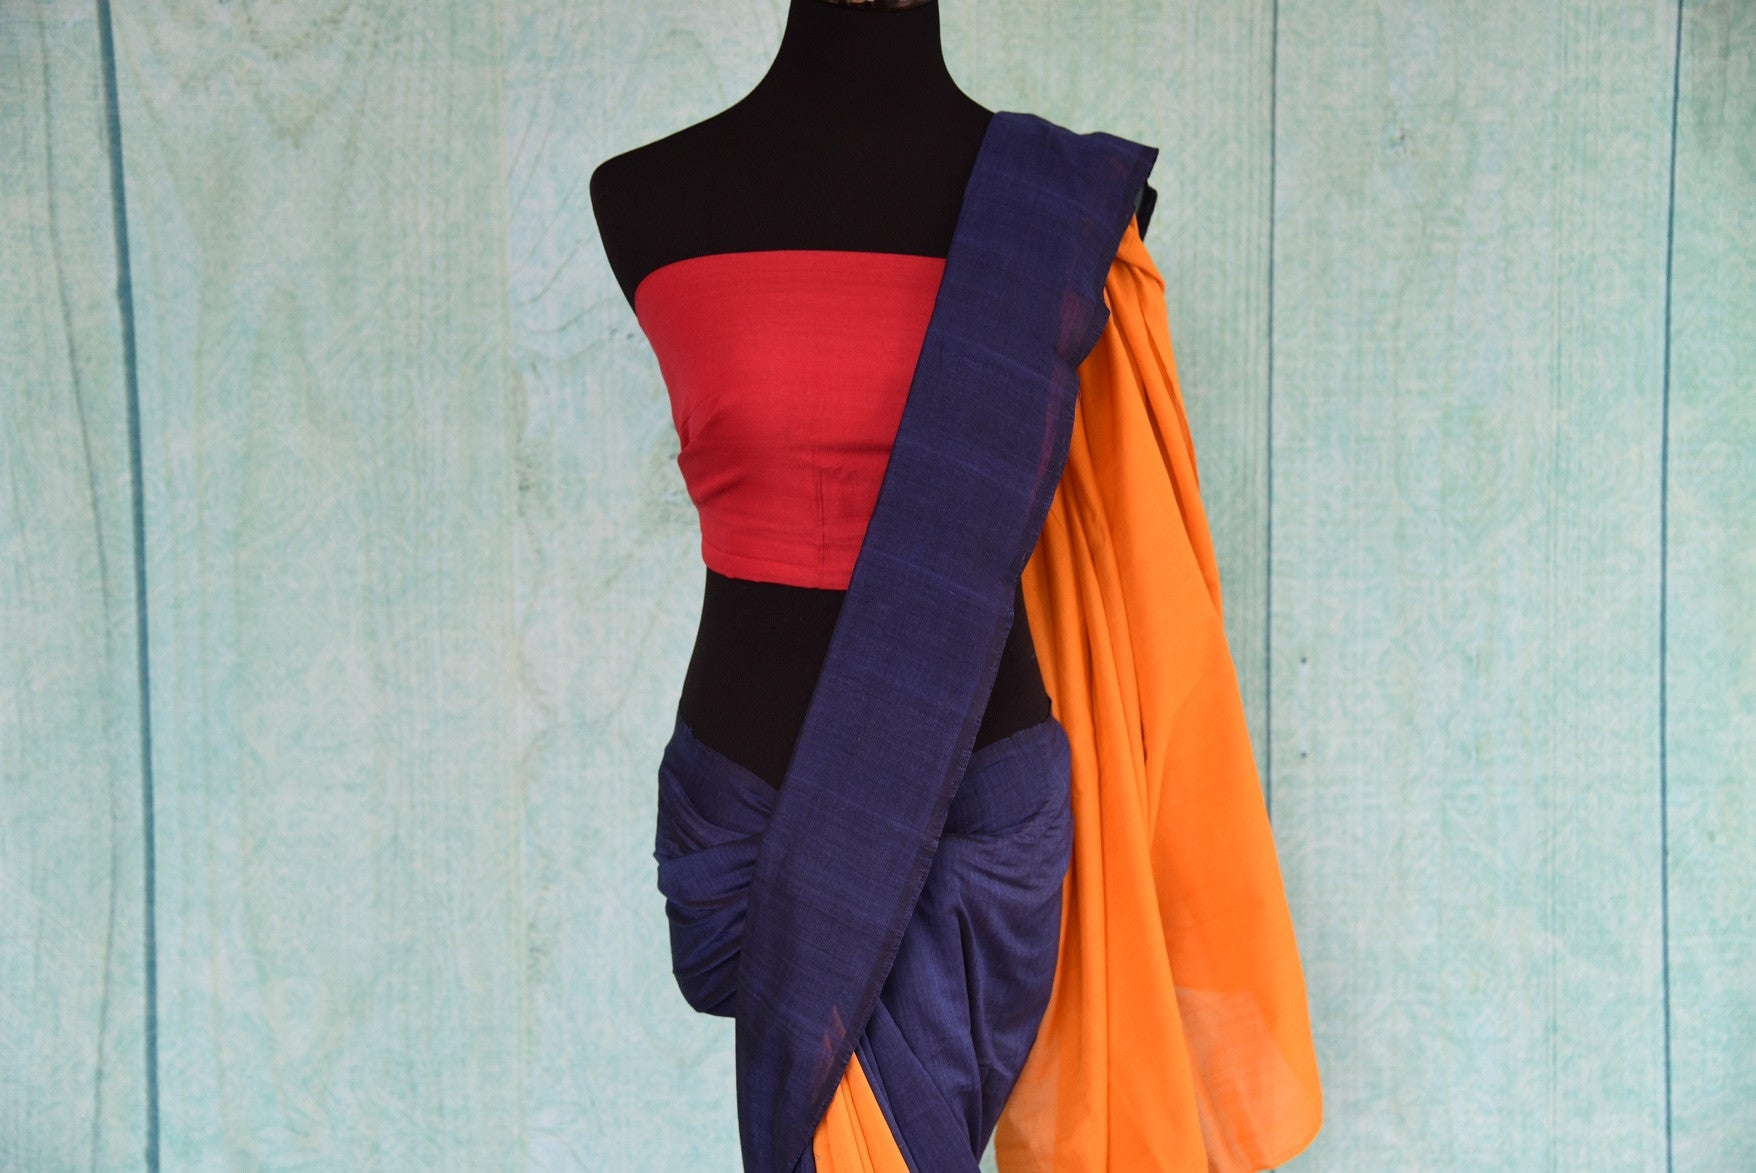 90D435 Blue, yellow & red, plain sari available at our ethnic fashion store Pure Elegance online and at Edison, USA. The cotton ikkat saree makes for the ideal Indian party wear outfit.